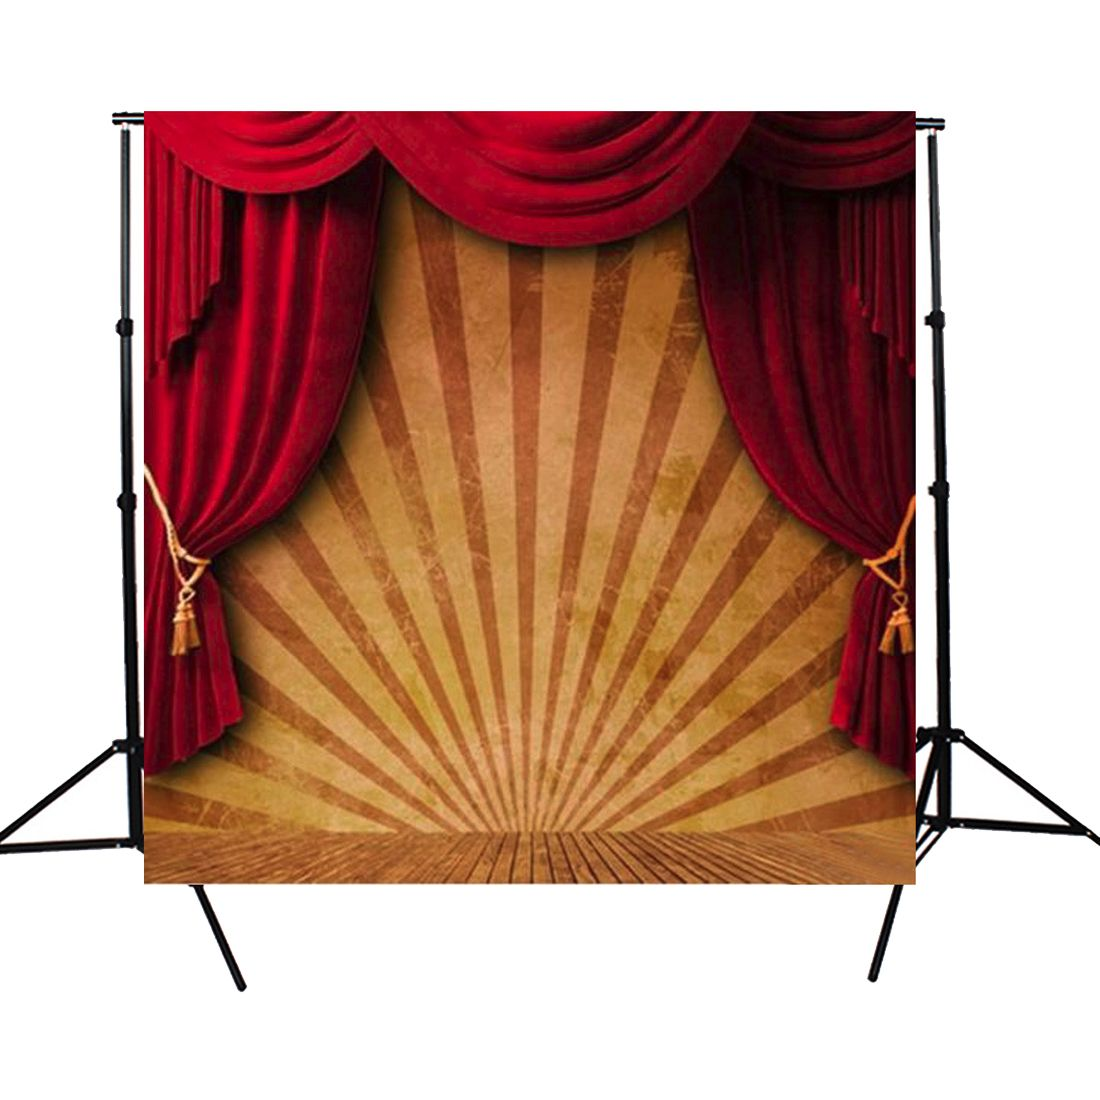 10x10FT Circus Red Curtain Stage Photography Backdrop Background Studio Vinyl Durable Folding Light Weight Photography Tool